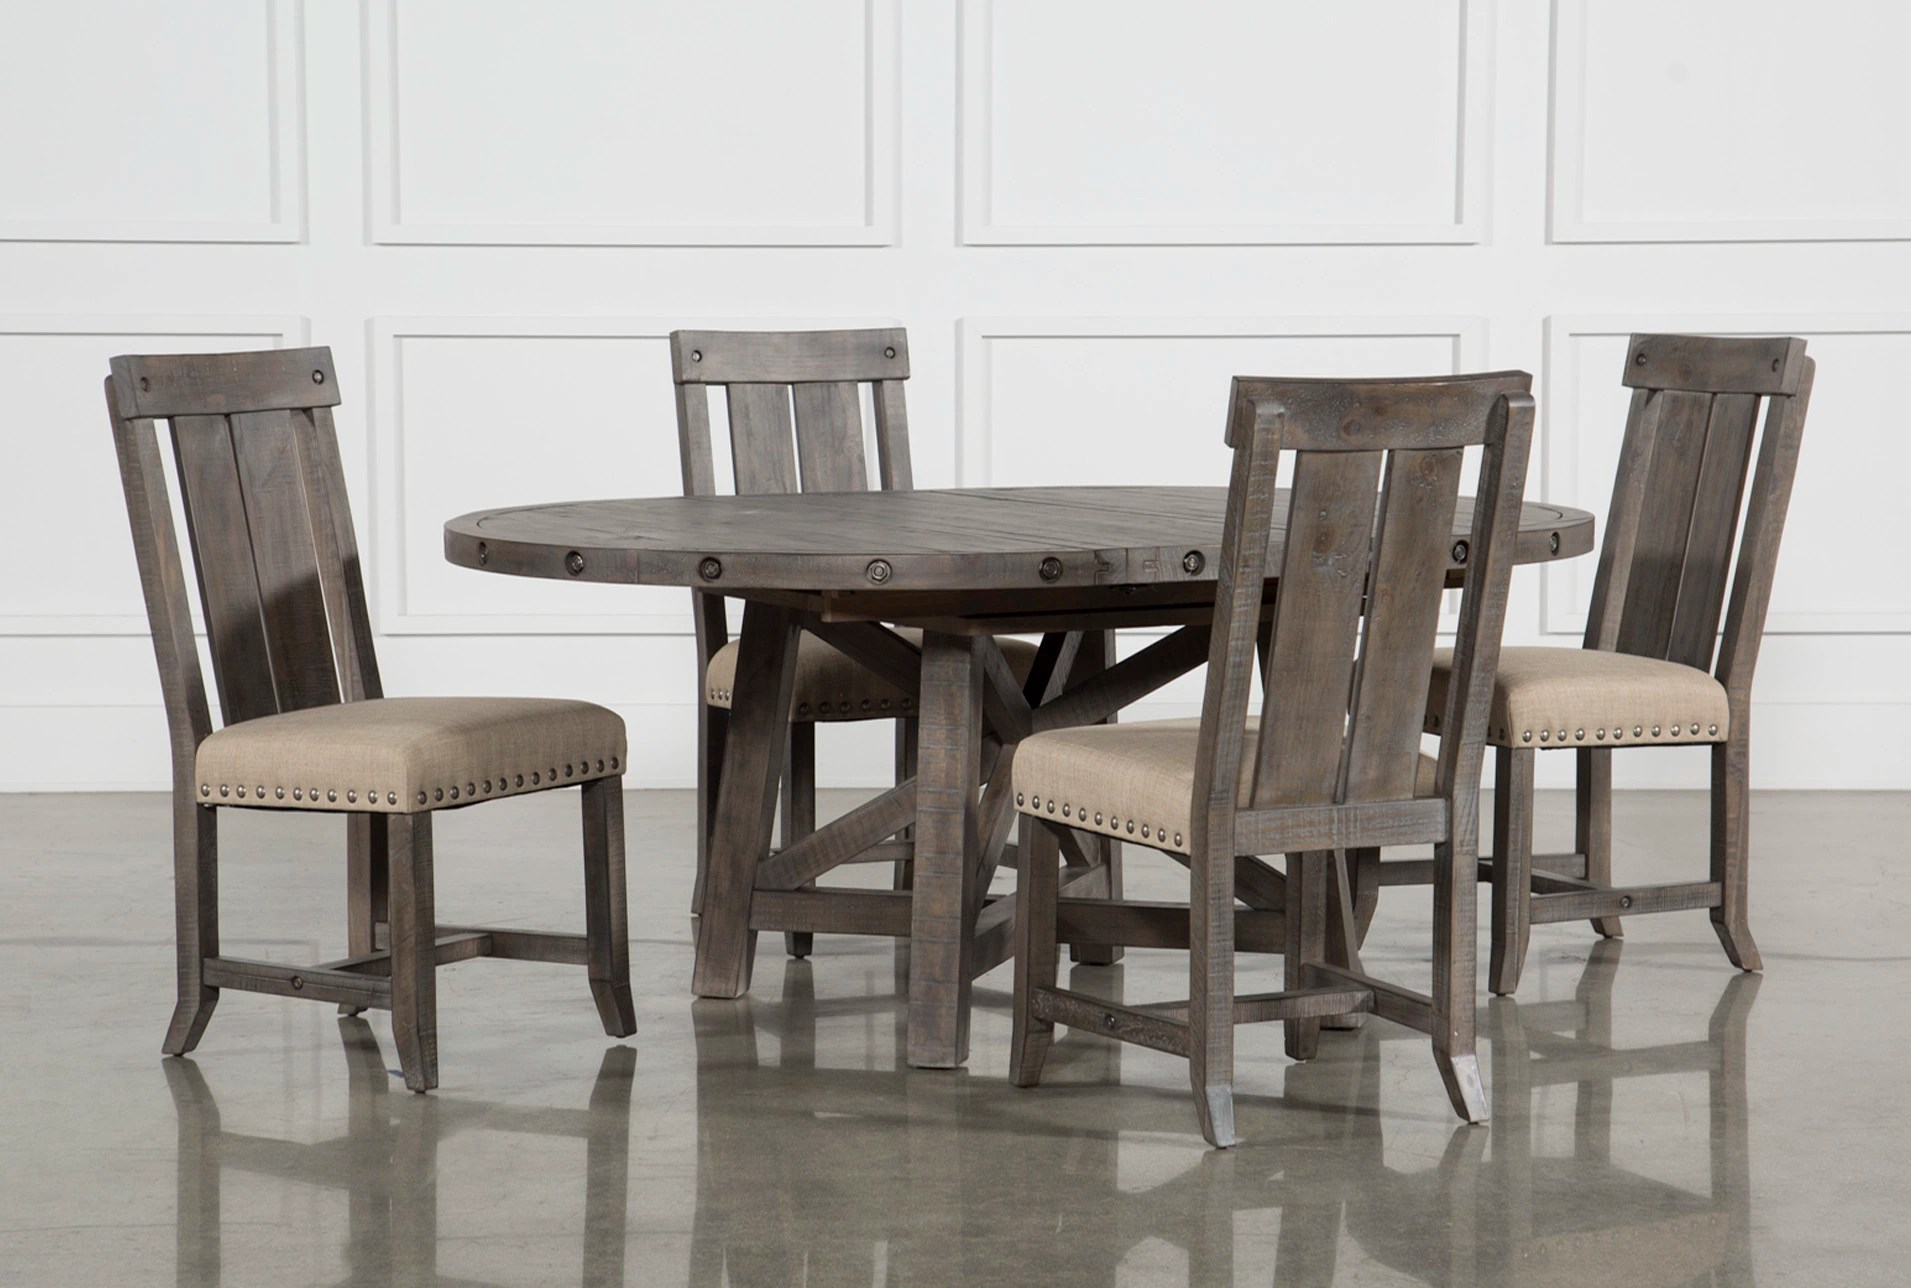 Table With Chairs Jaxon Grey 5 Piece Round Extension Dining Set W Wood Chairs